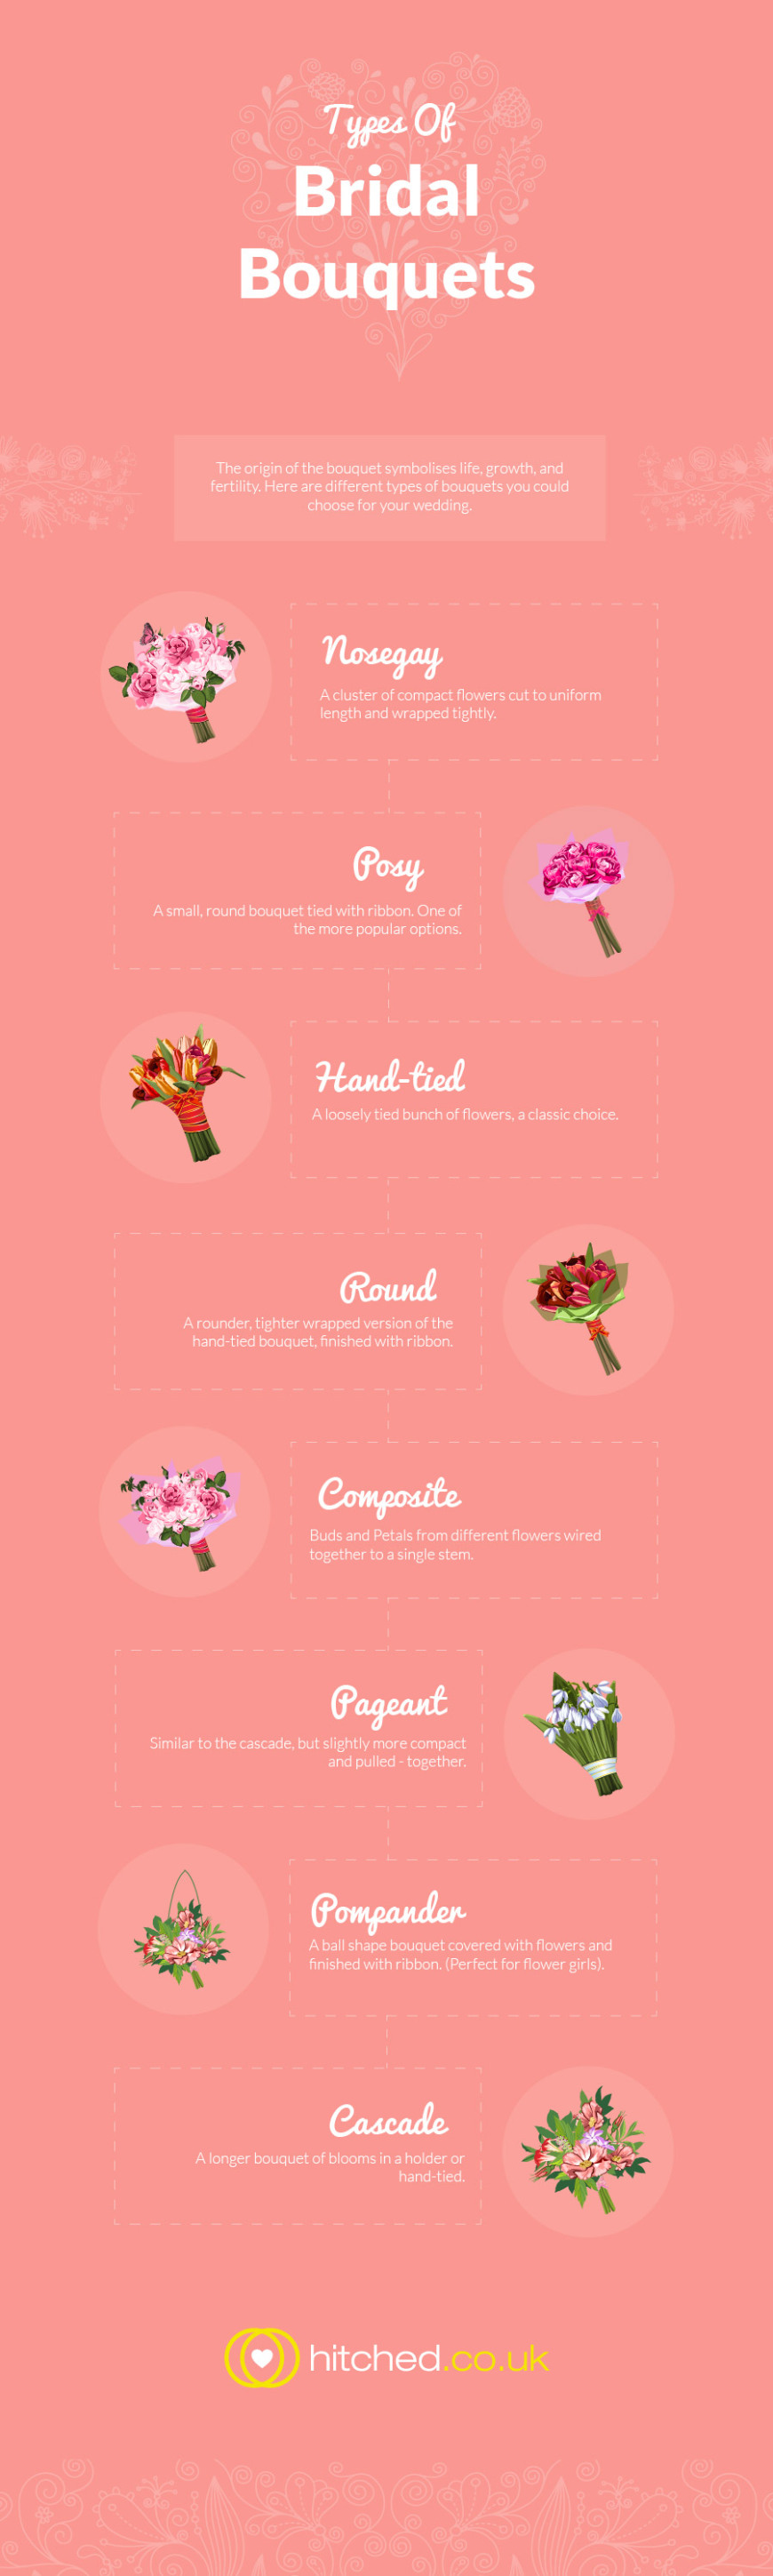 Types Of Bridal Bouquetched